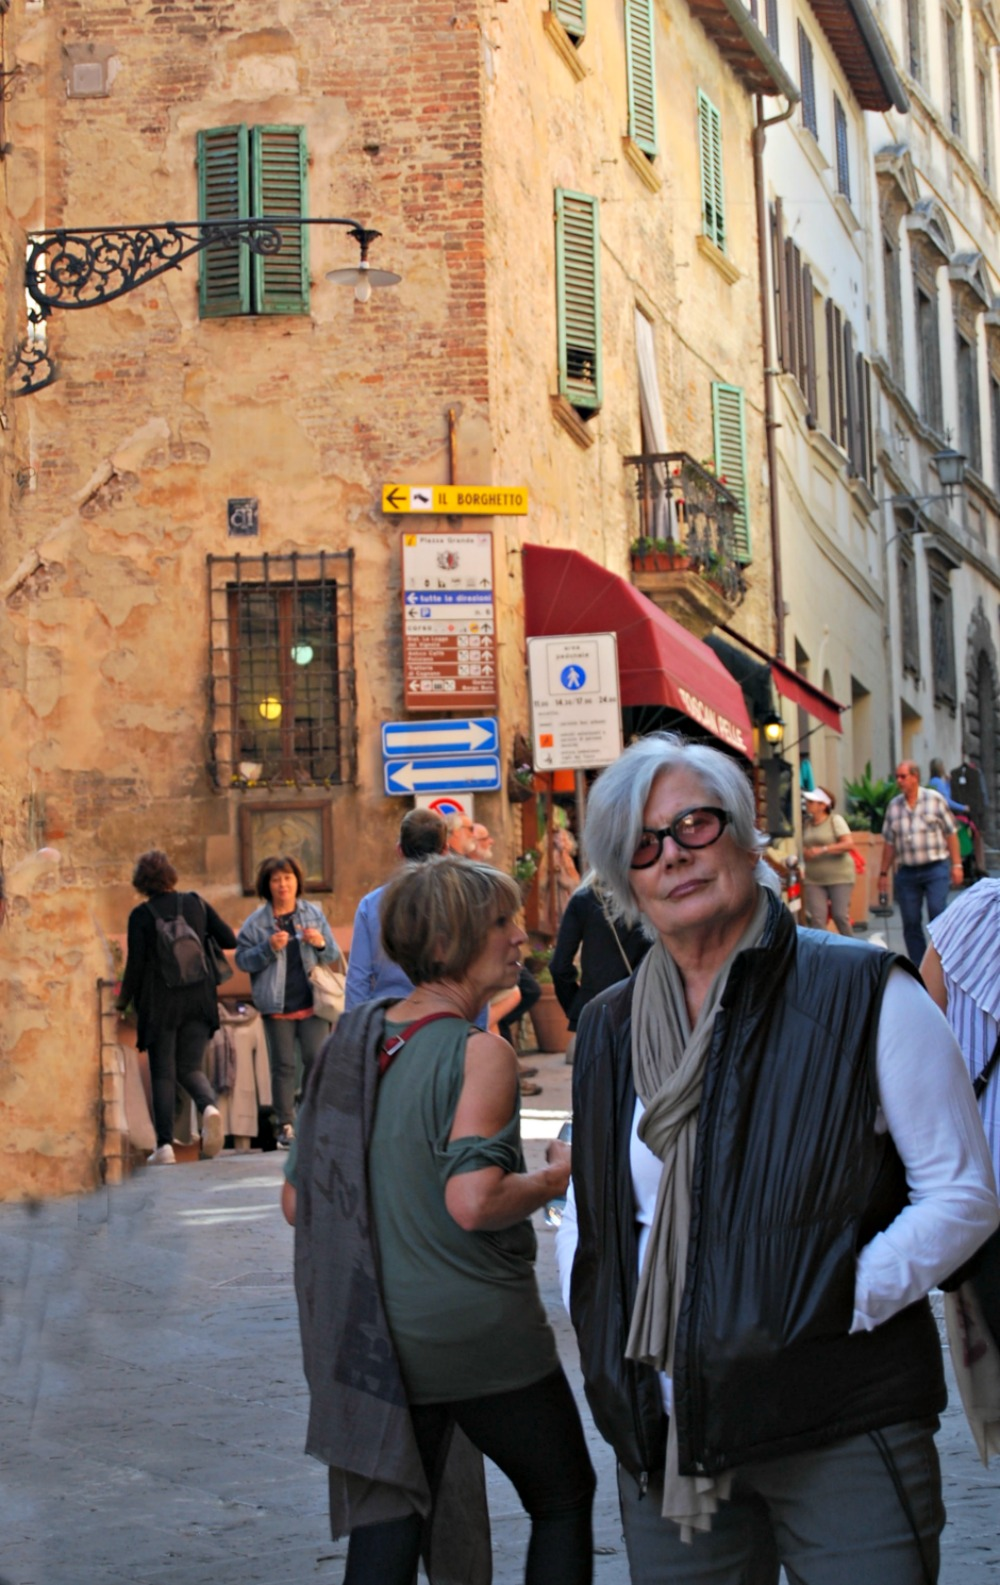 - Lots of tourist enjoying beautiful fall weather in Montepulciano